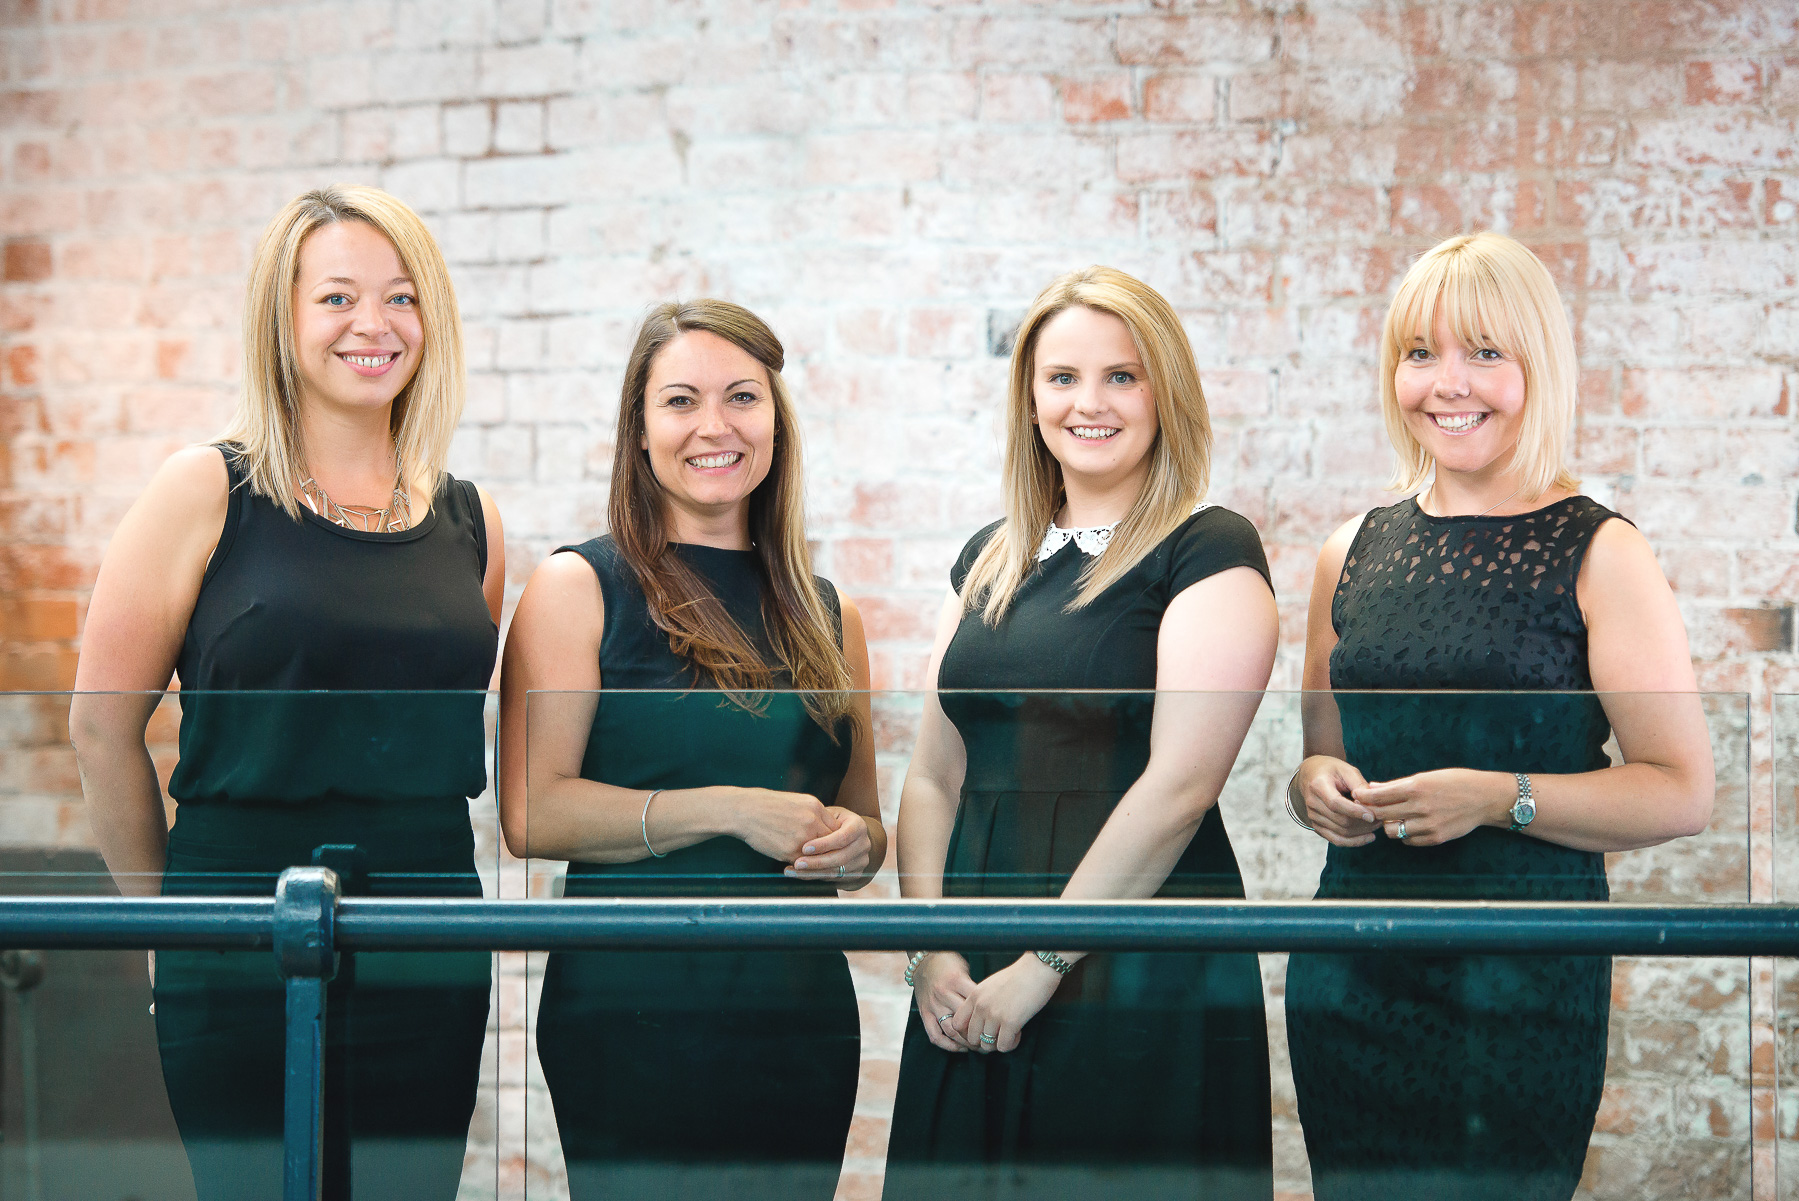 Group of young professional women in black business attire with natural brick background